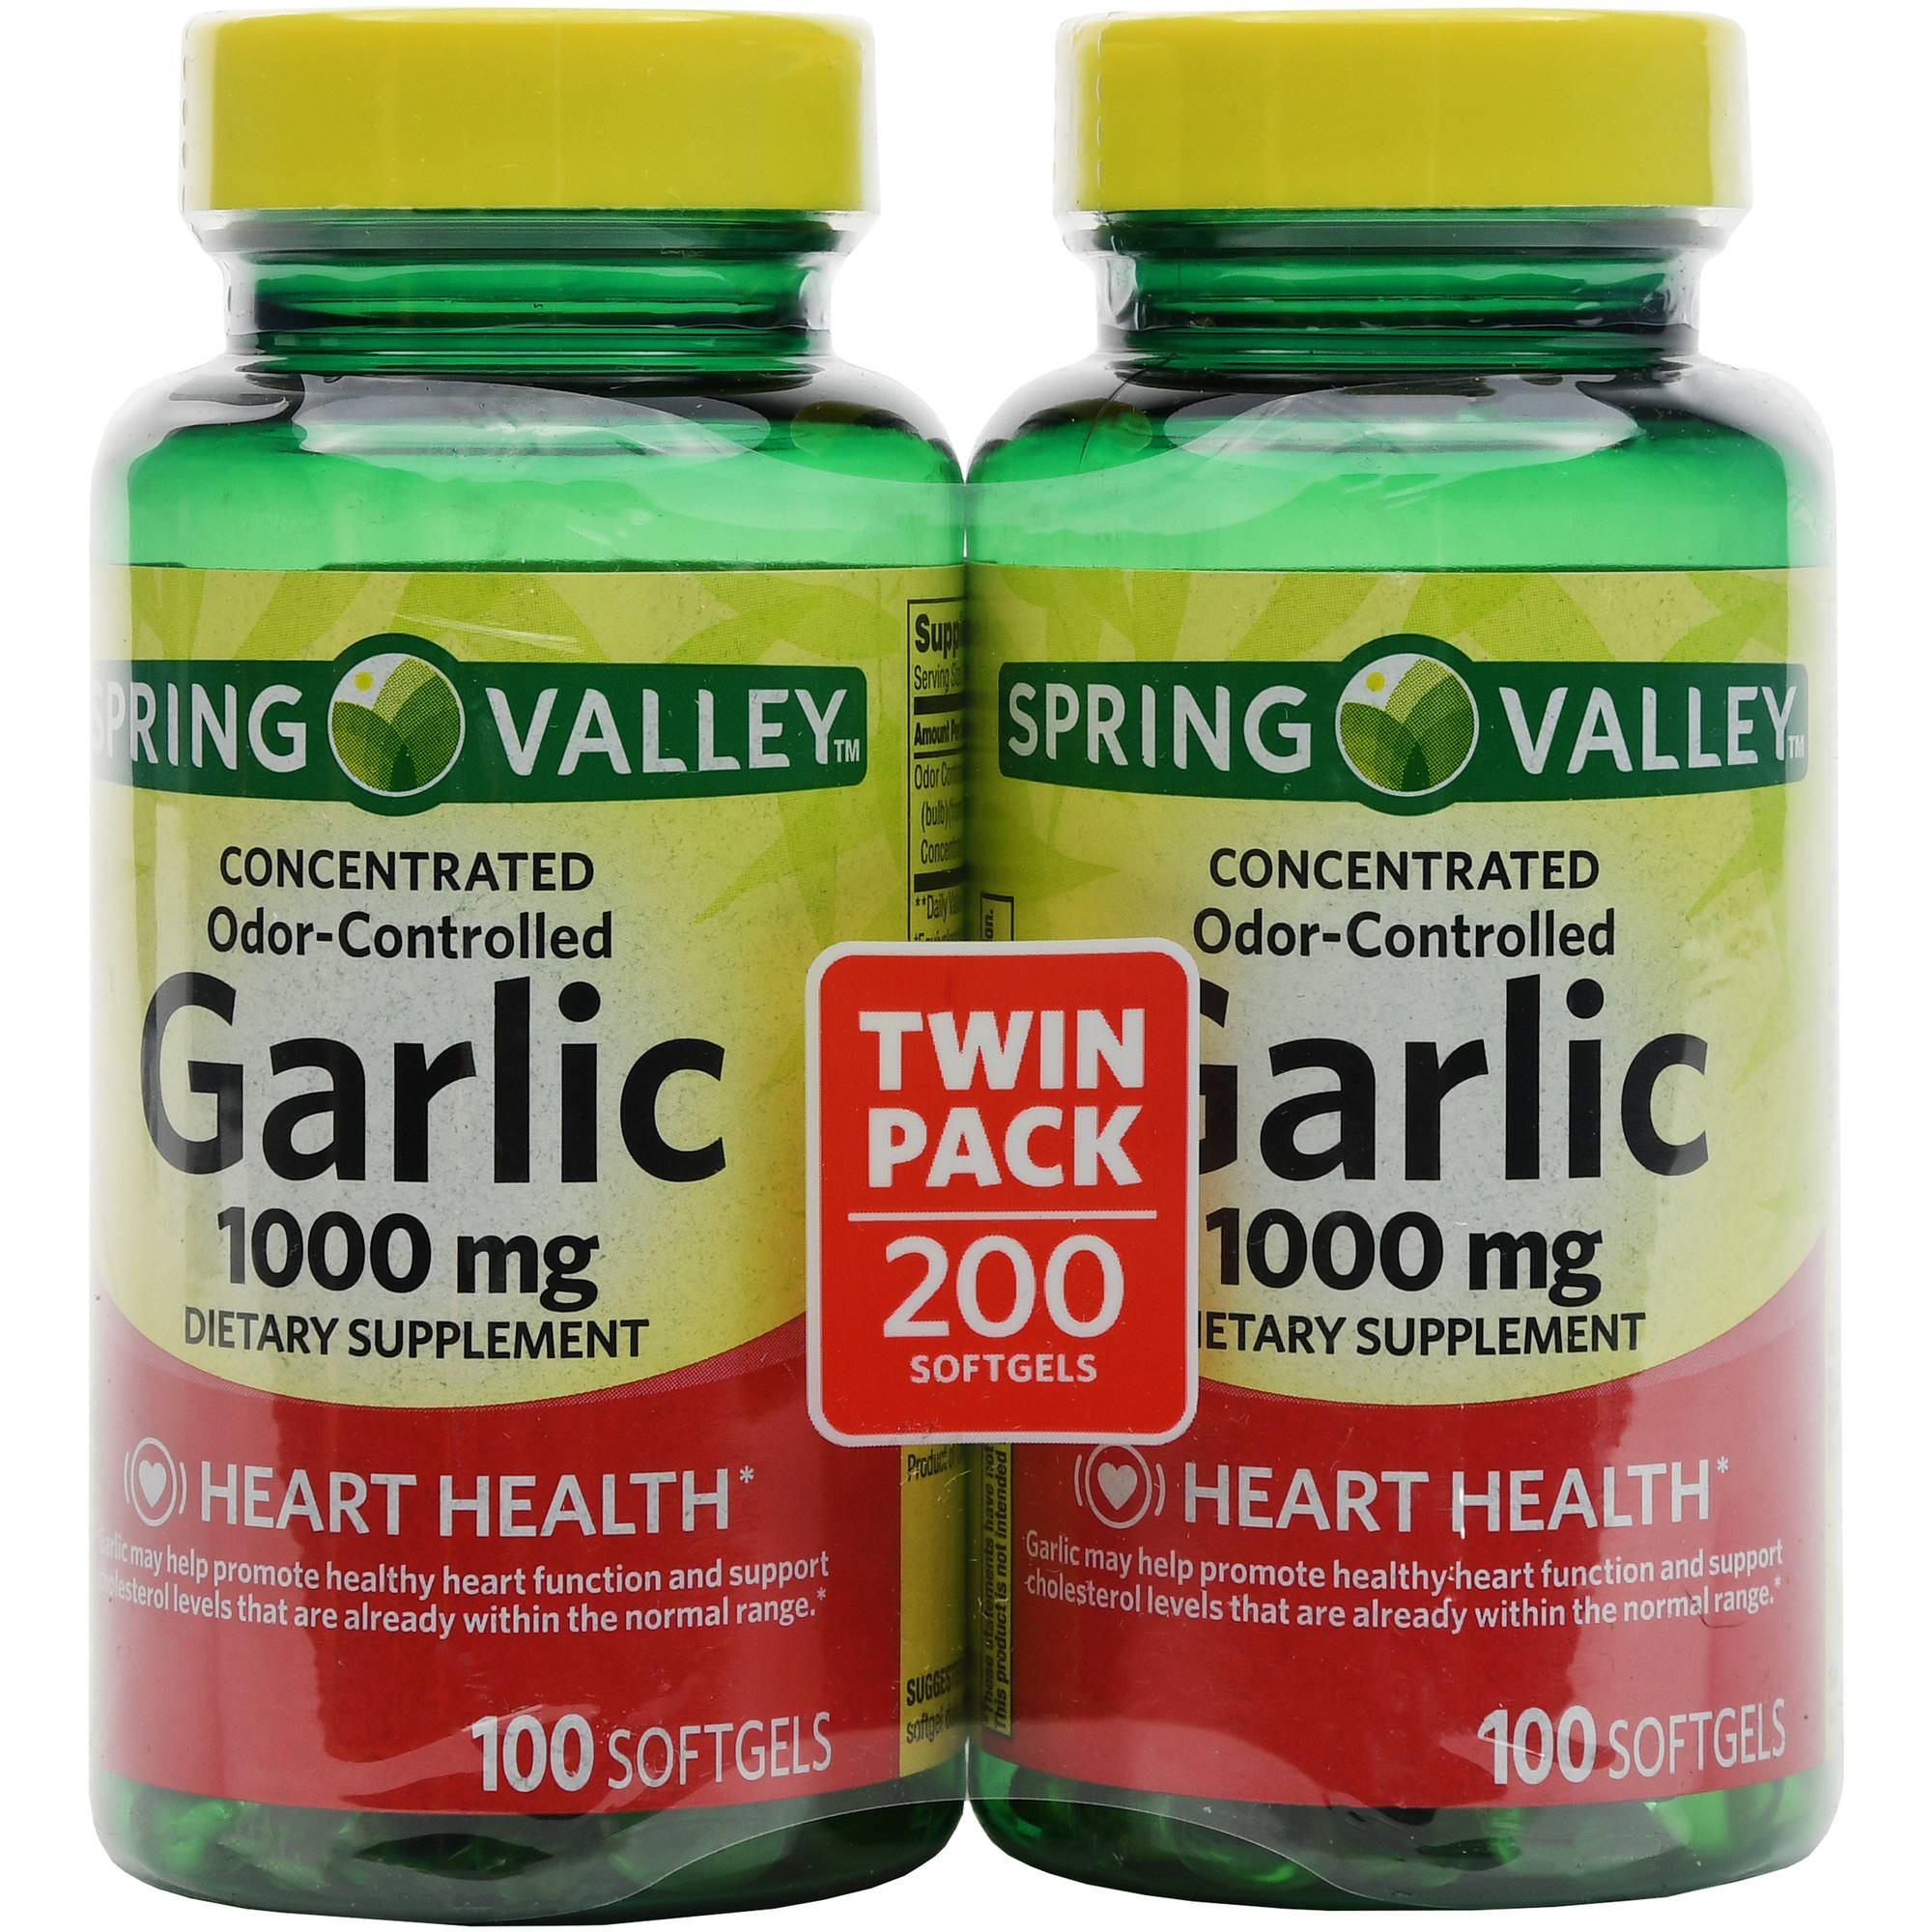 Spring Valley Odor-Controlled Garlic Herbal Supplement Softgels, 100 count, 2 pack